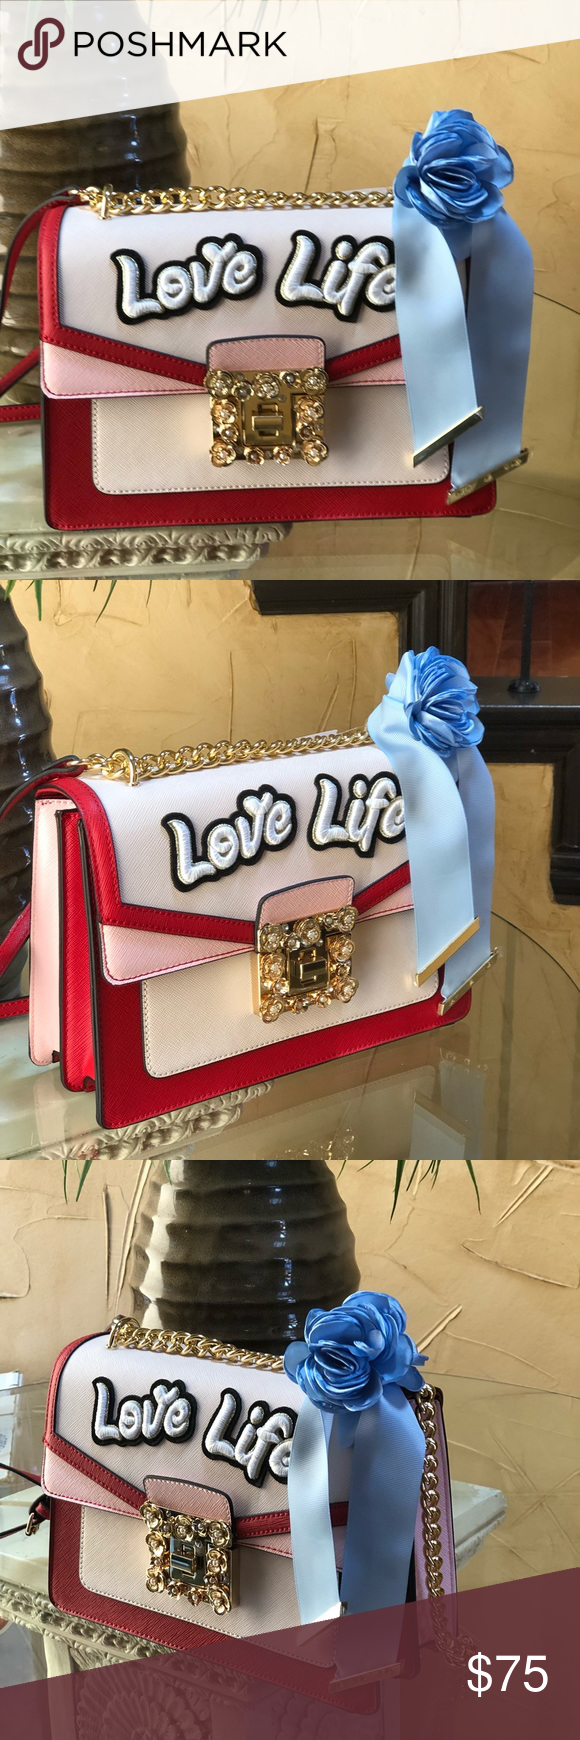 3b6d4903d00 NWT Aldo sonara love life crossbody bag red  pink Complete your outfit with  an iconic